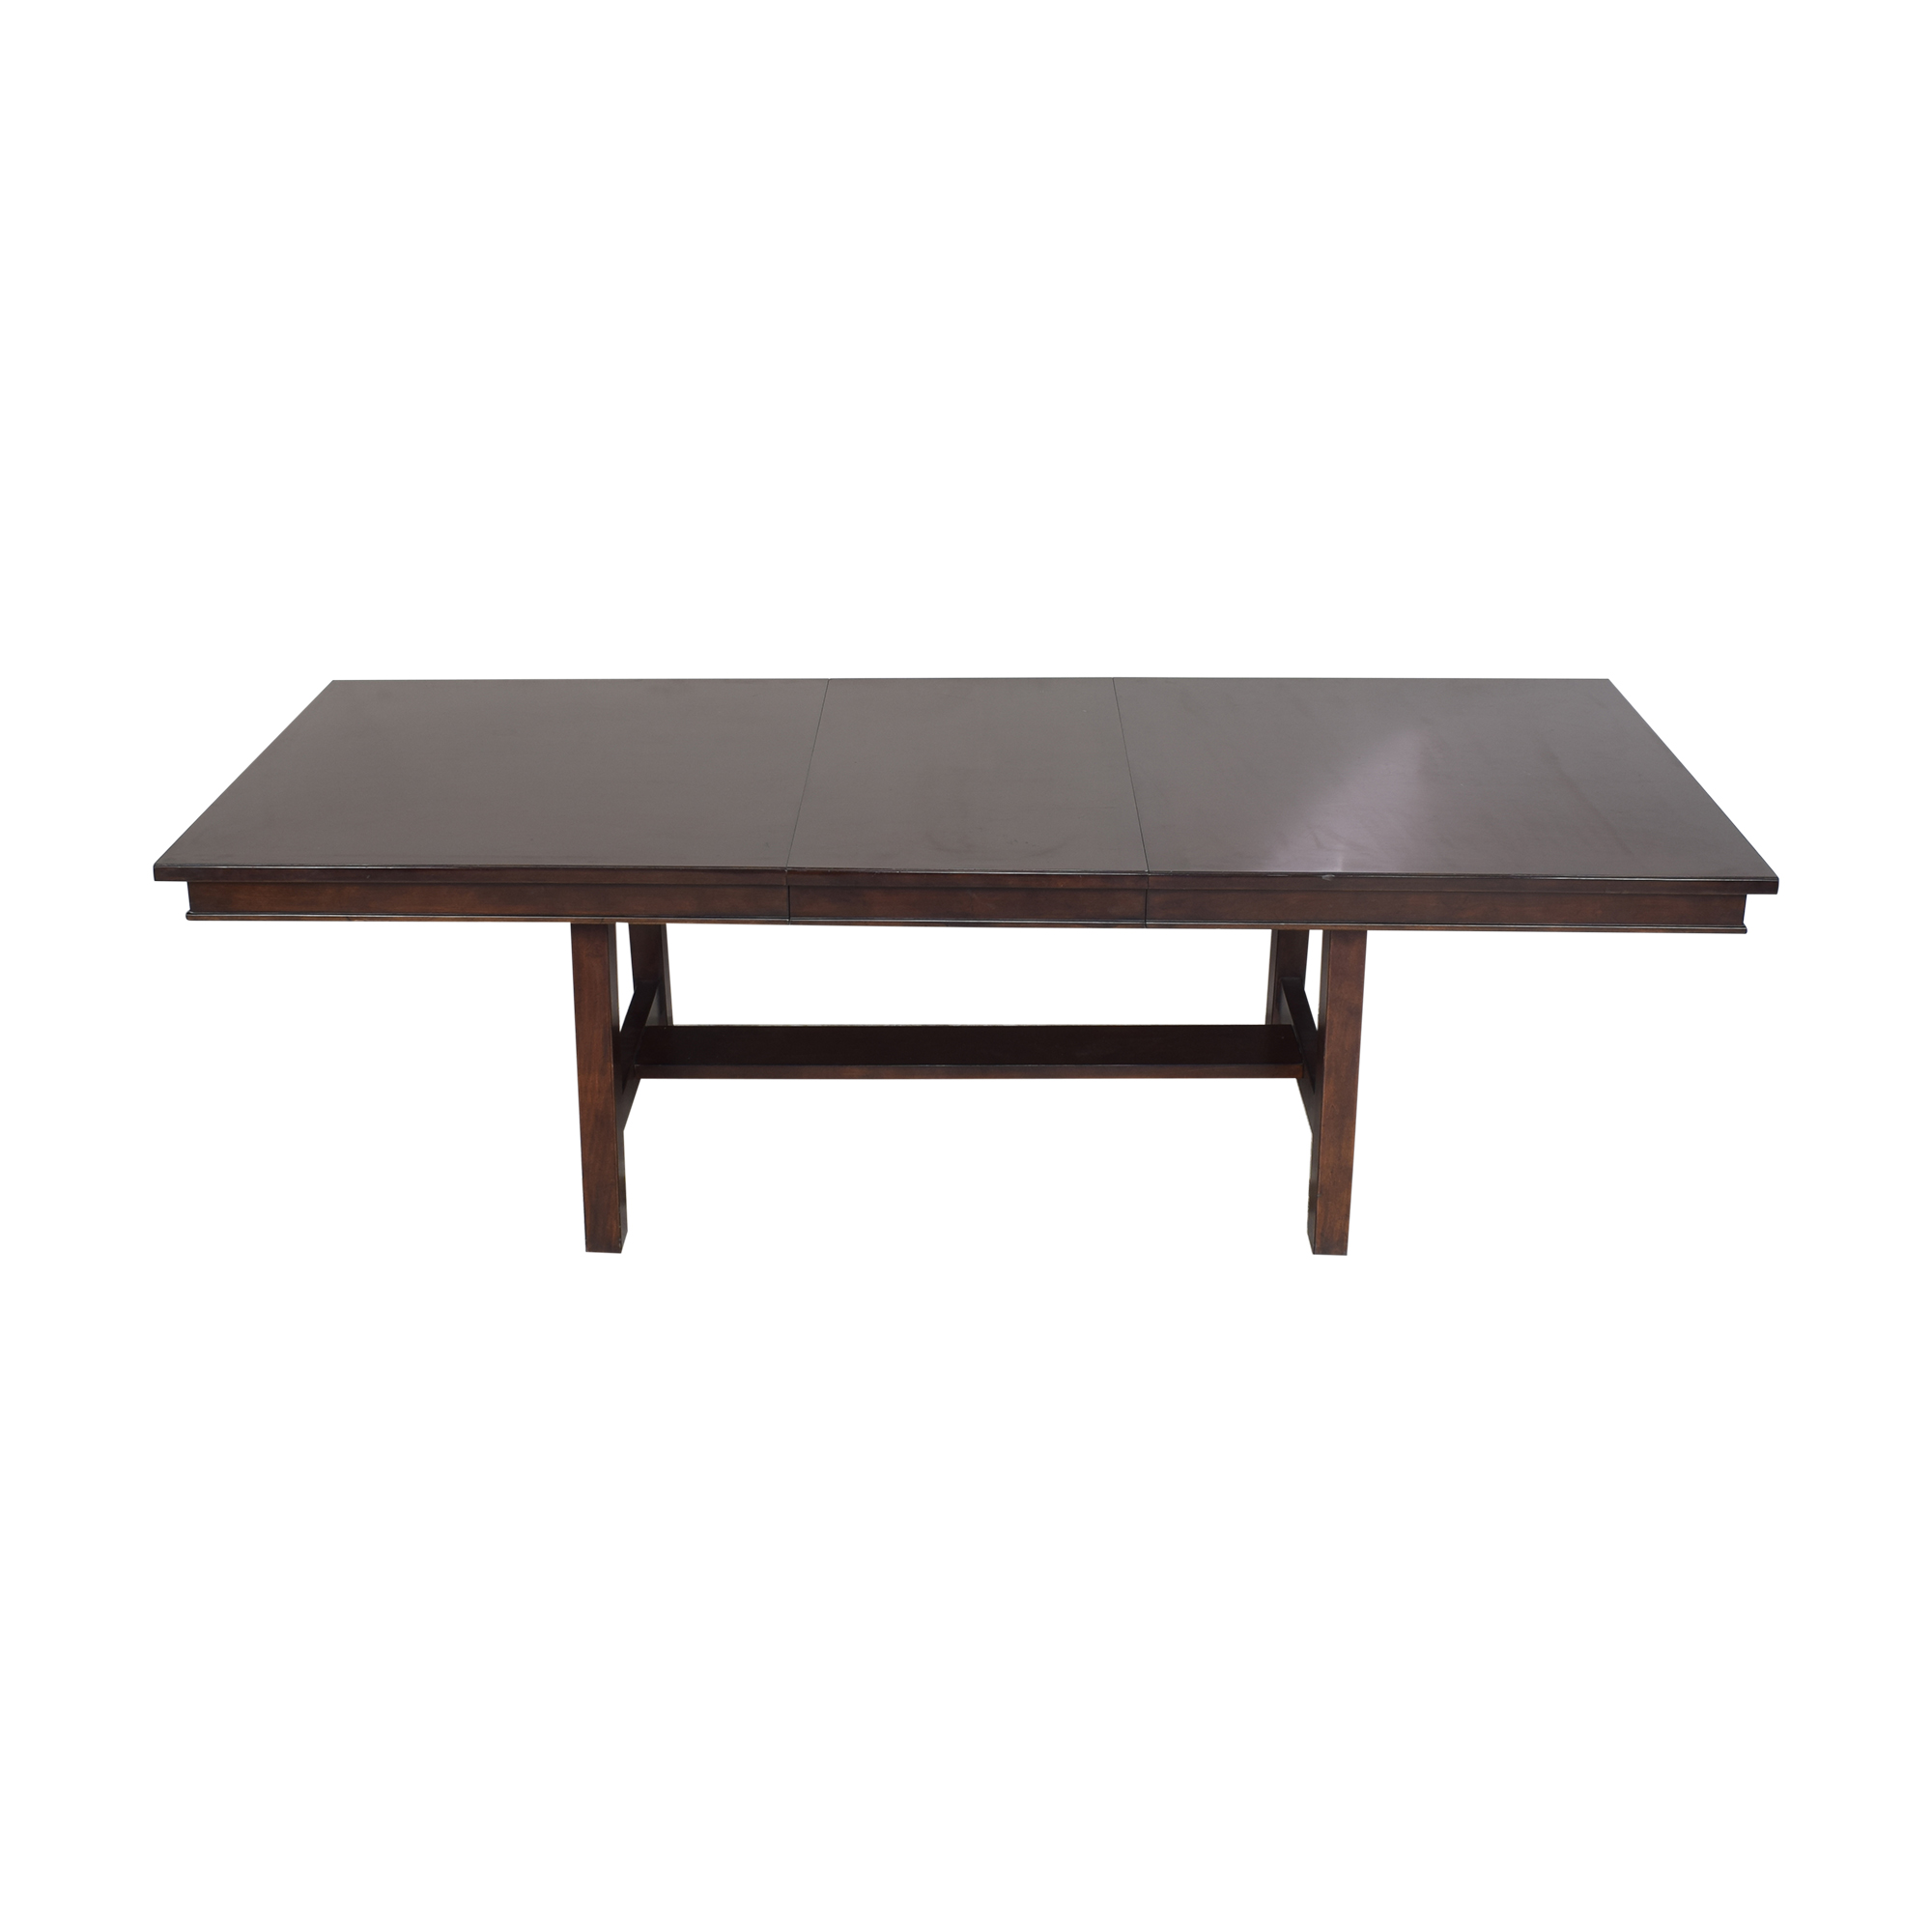 Extendable Trestle Dining Table second hand